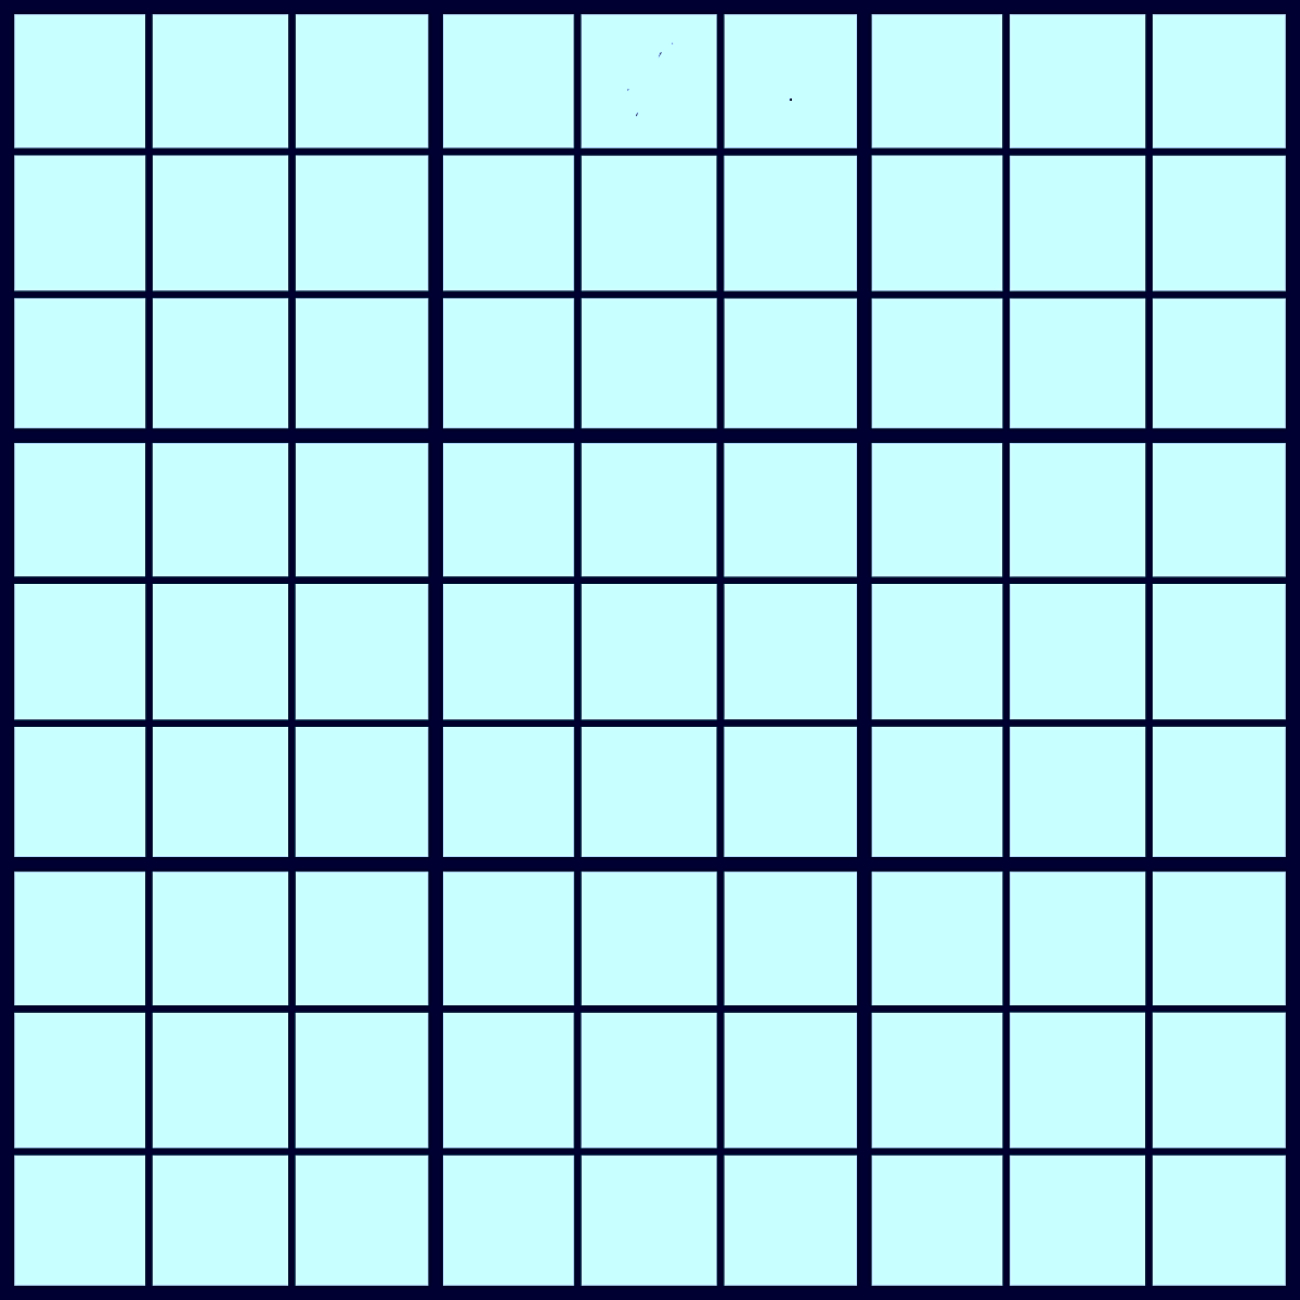 This is a photo of Printable Sudoku Pdf intended for standard